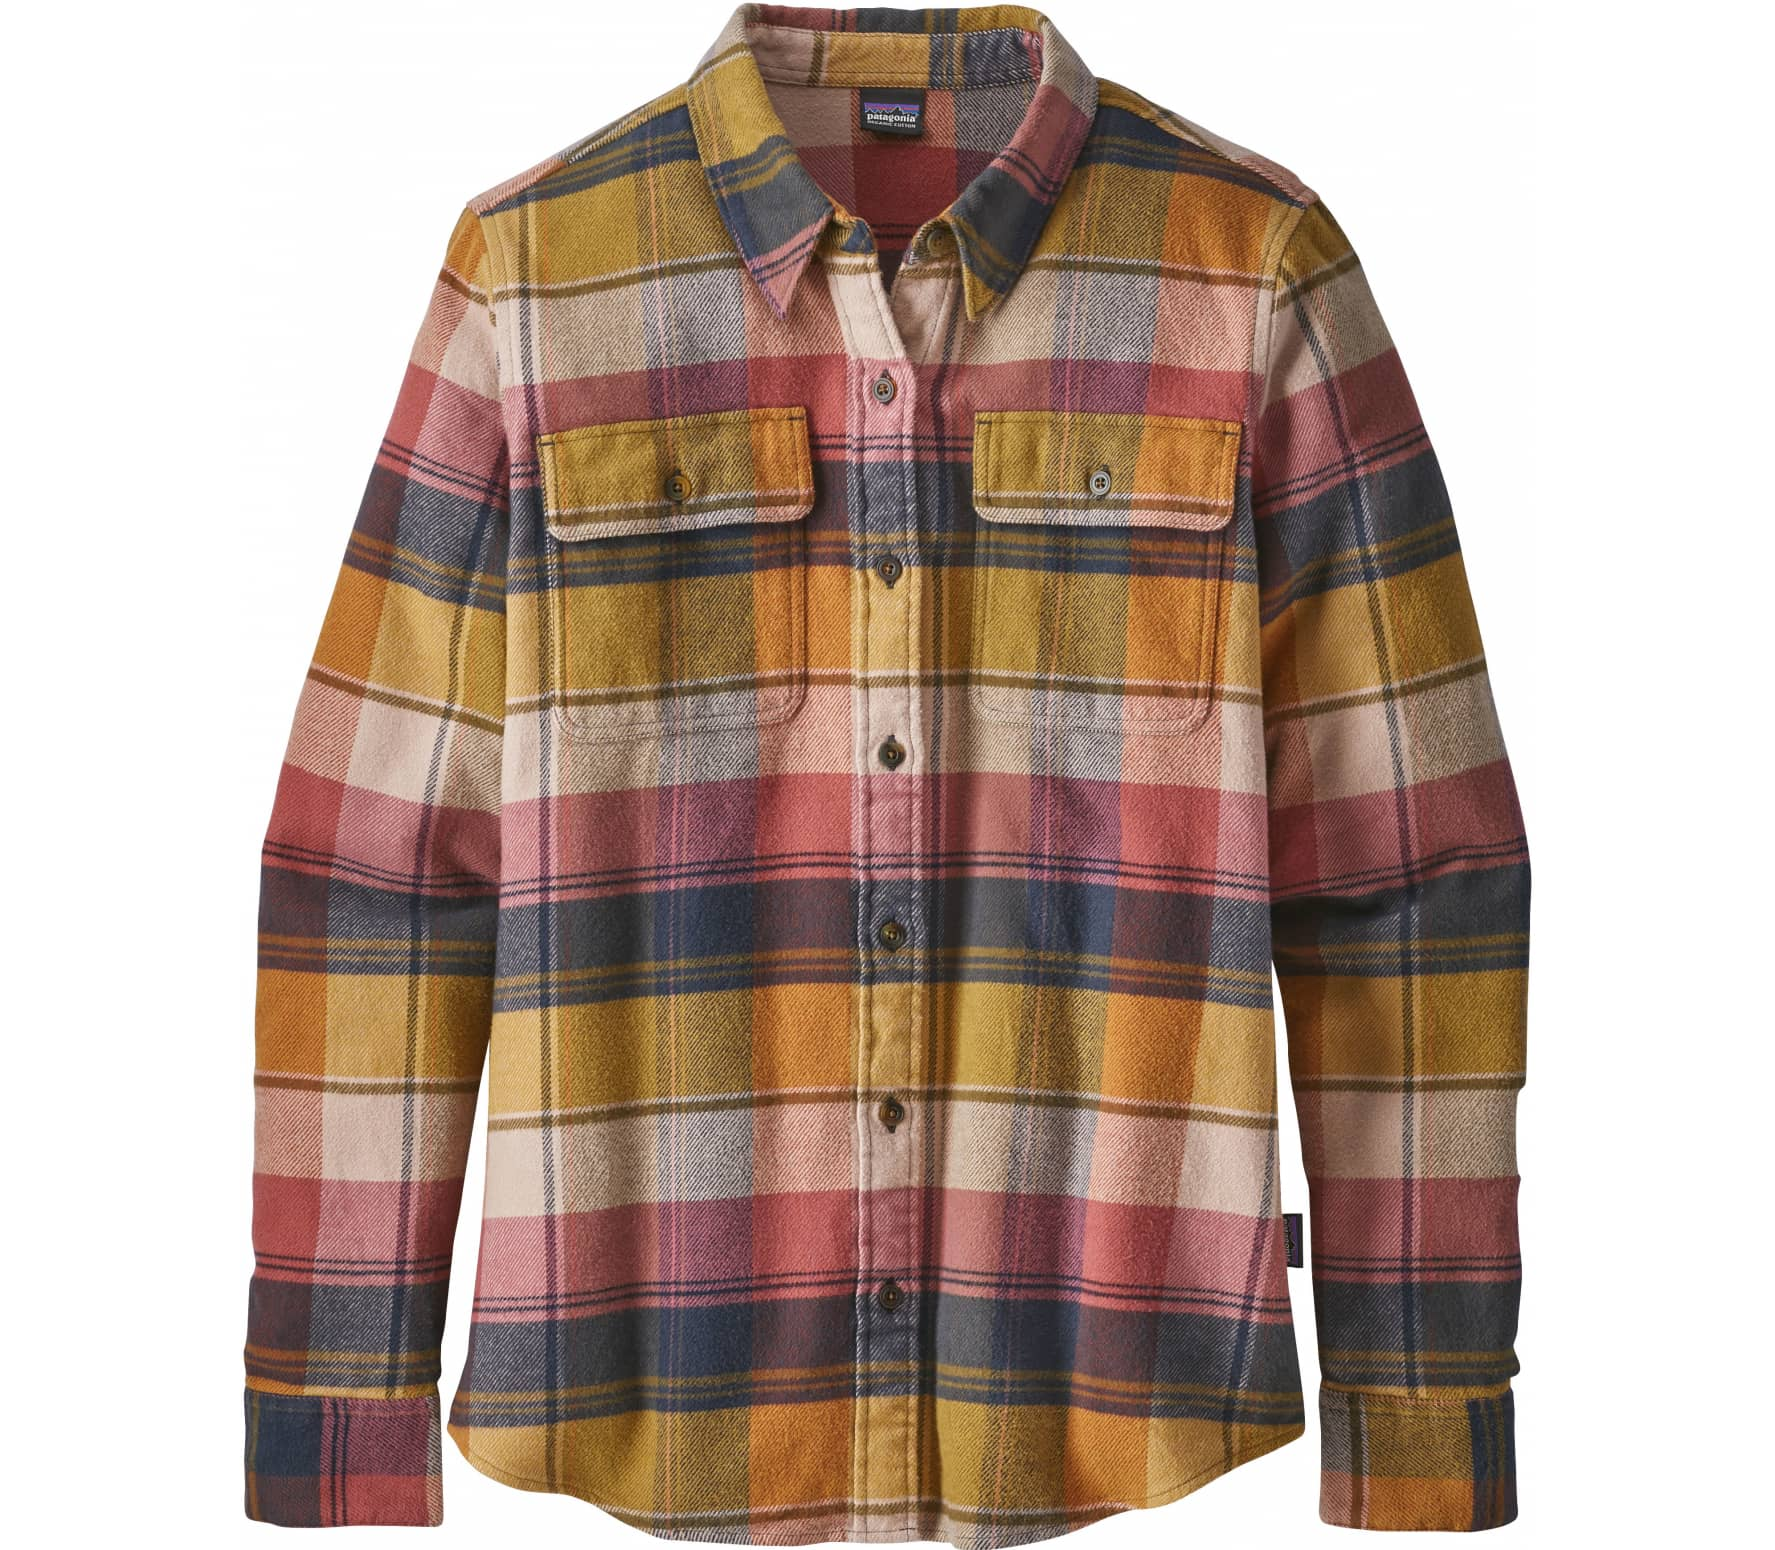 Patagonia - Fjord women's flannel top (multicoloured)